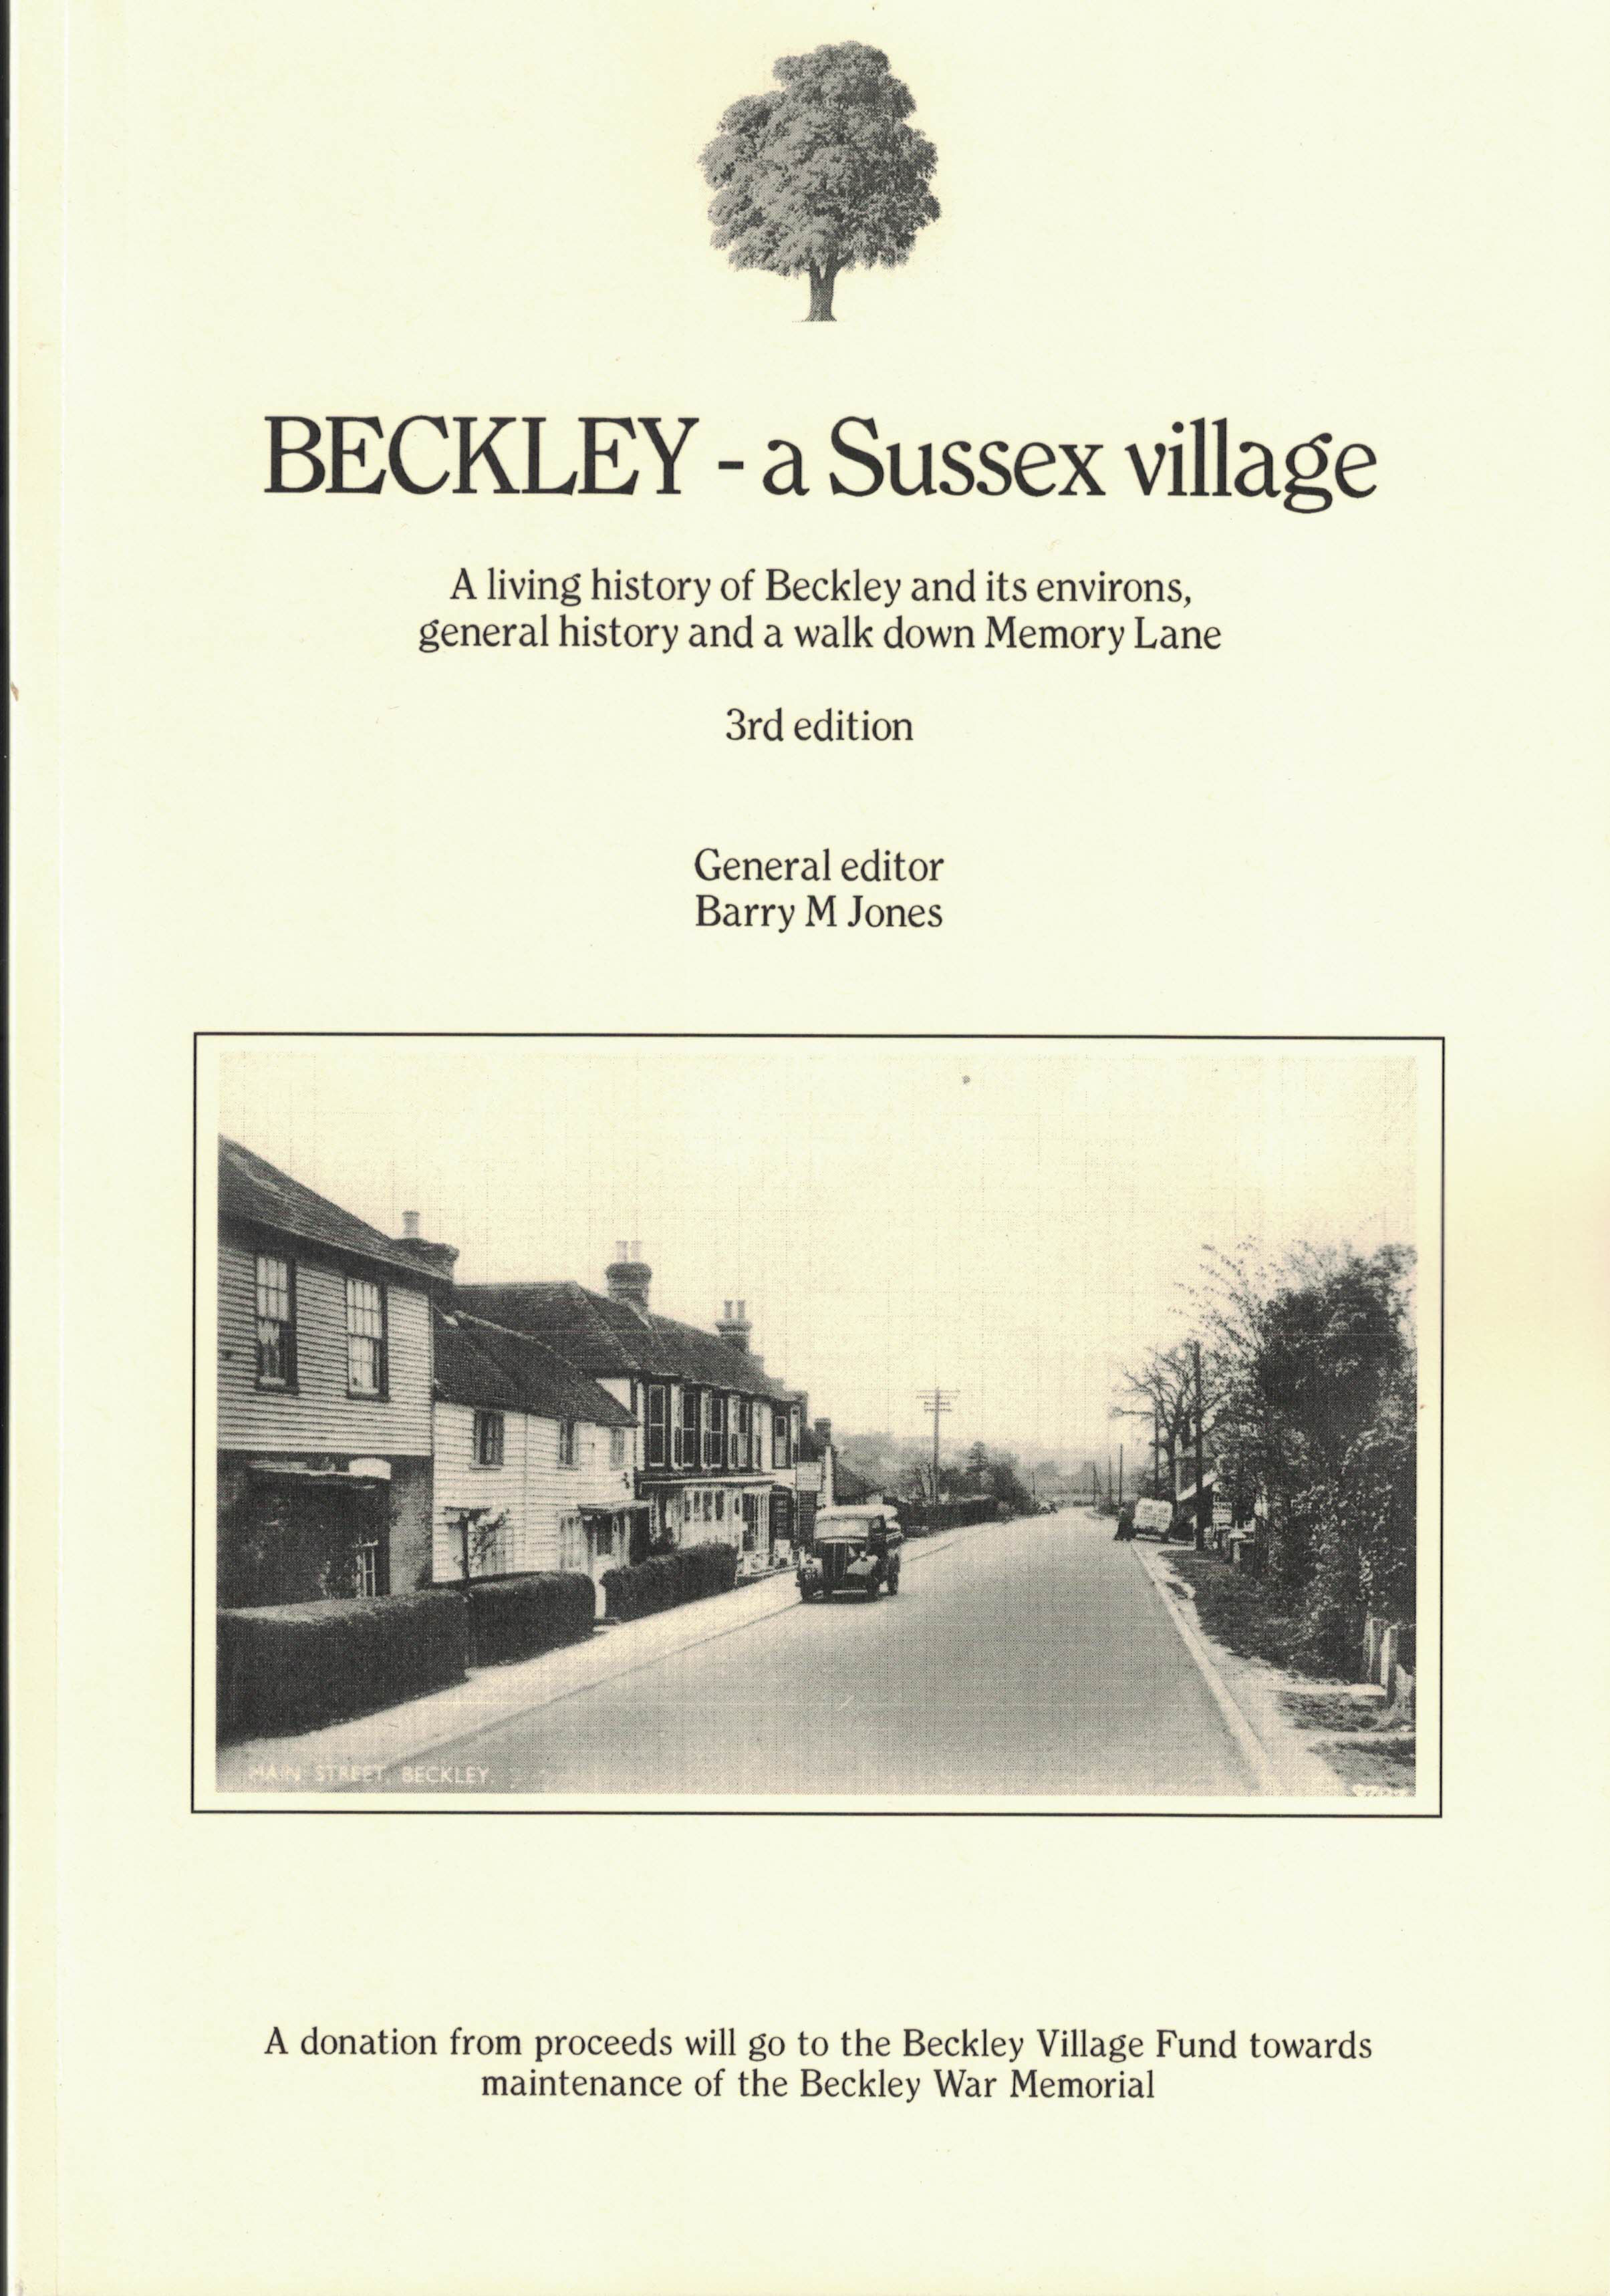 Beckley - a Sussex village